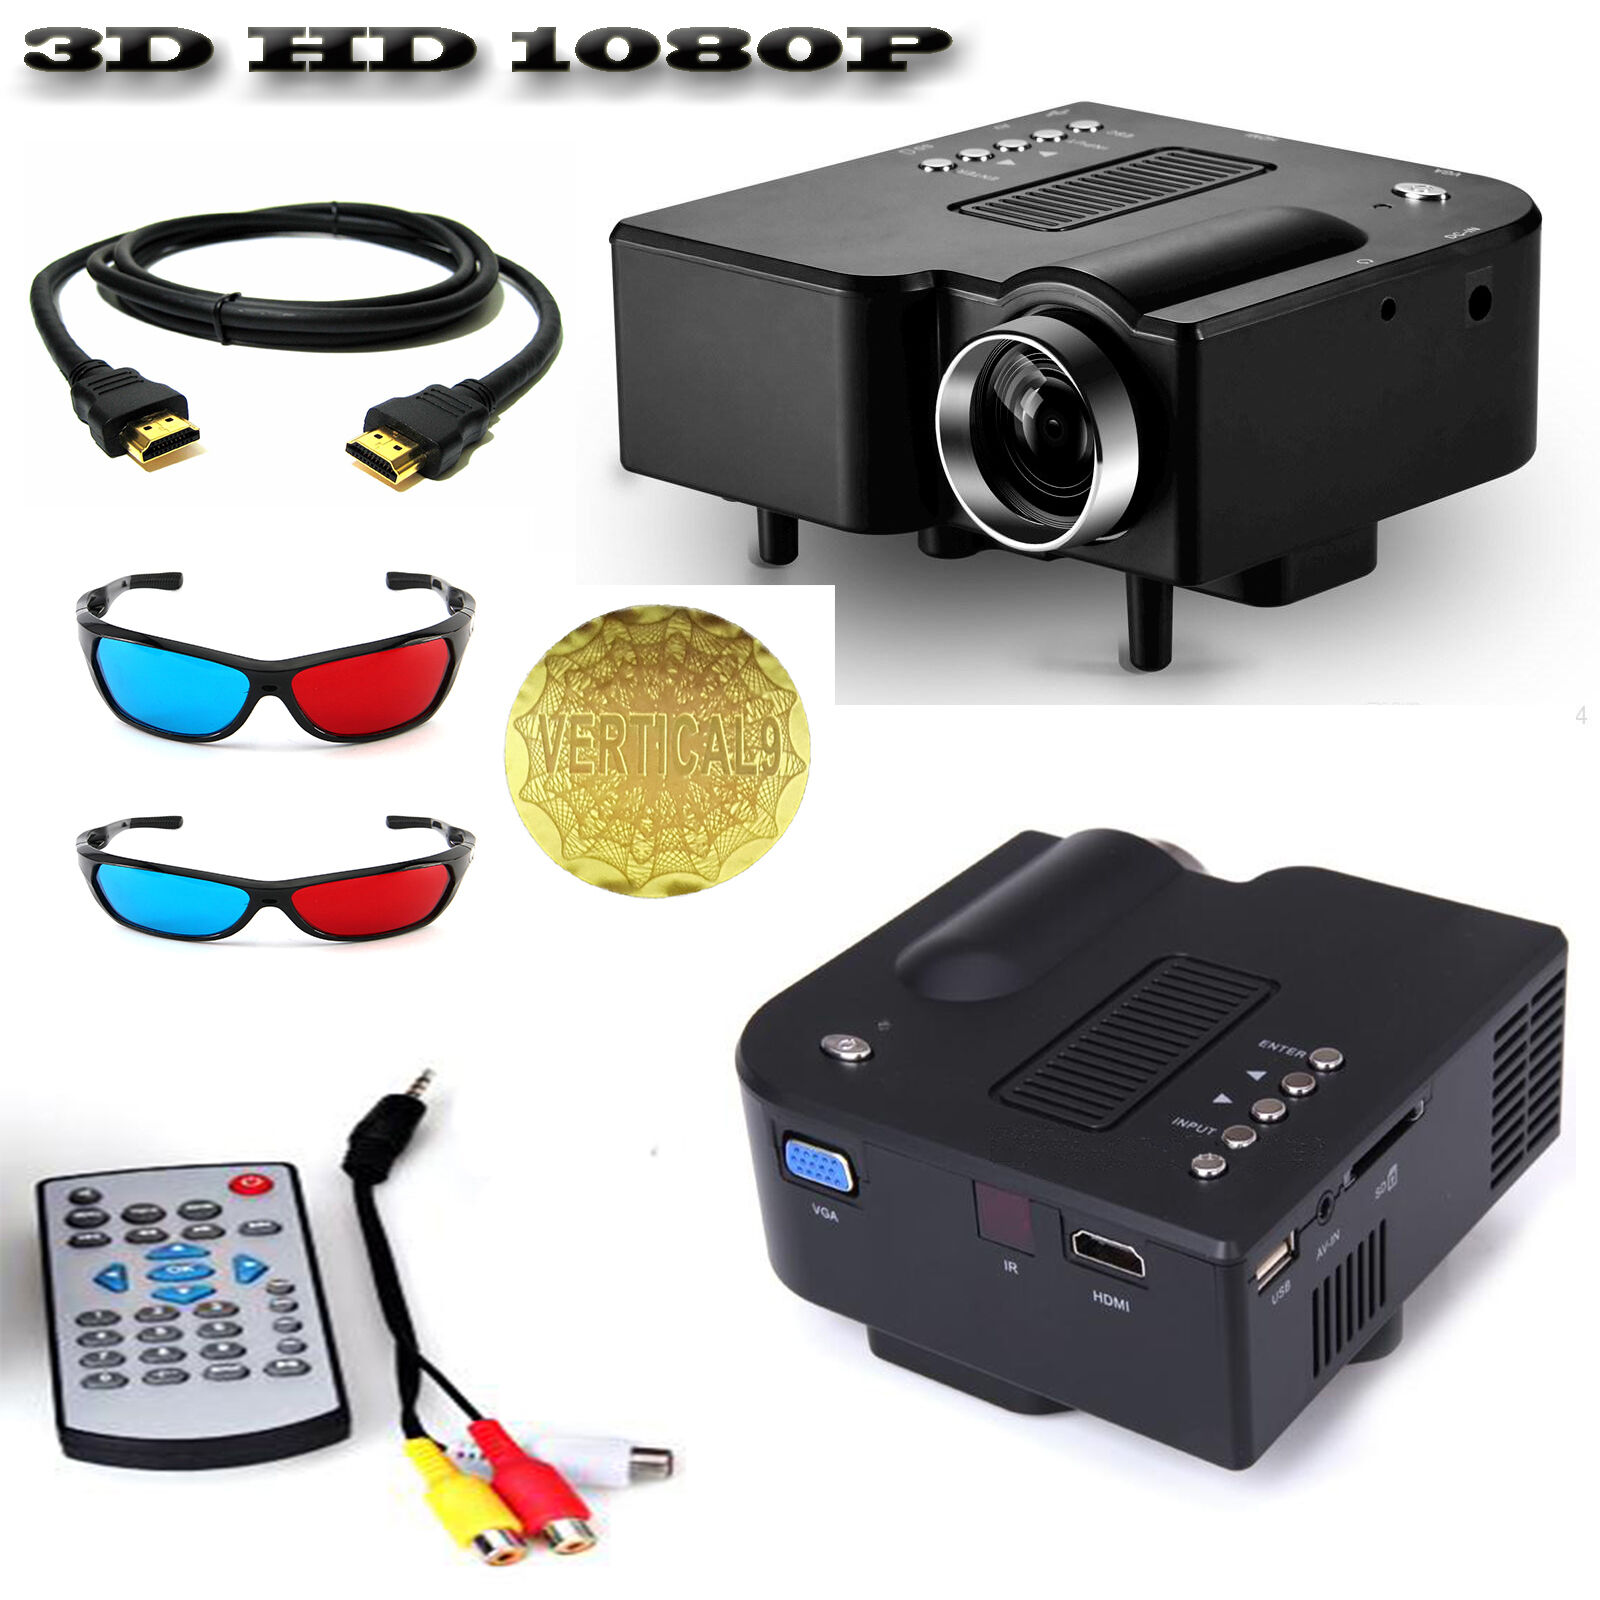 Fuleadture Portable Led Projector 1080p Hd Multimedia: Mini Portable LED 3D Projector 1080P Multimedia Home